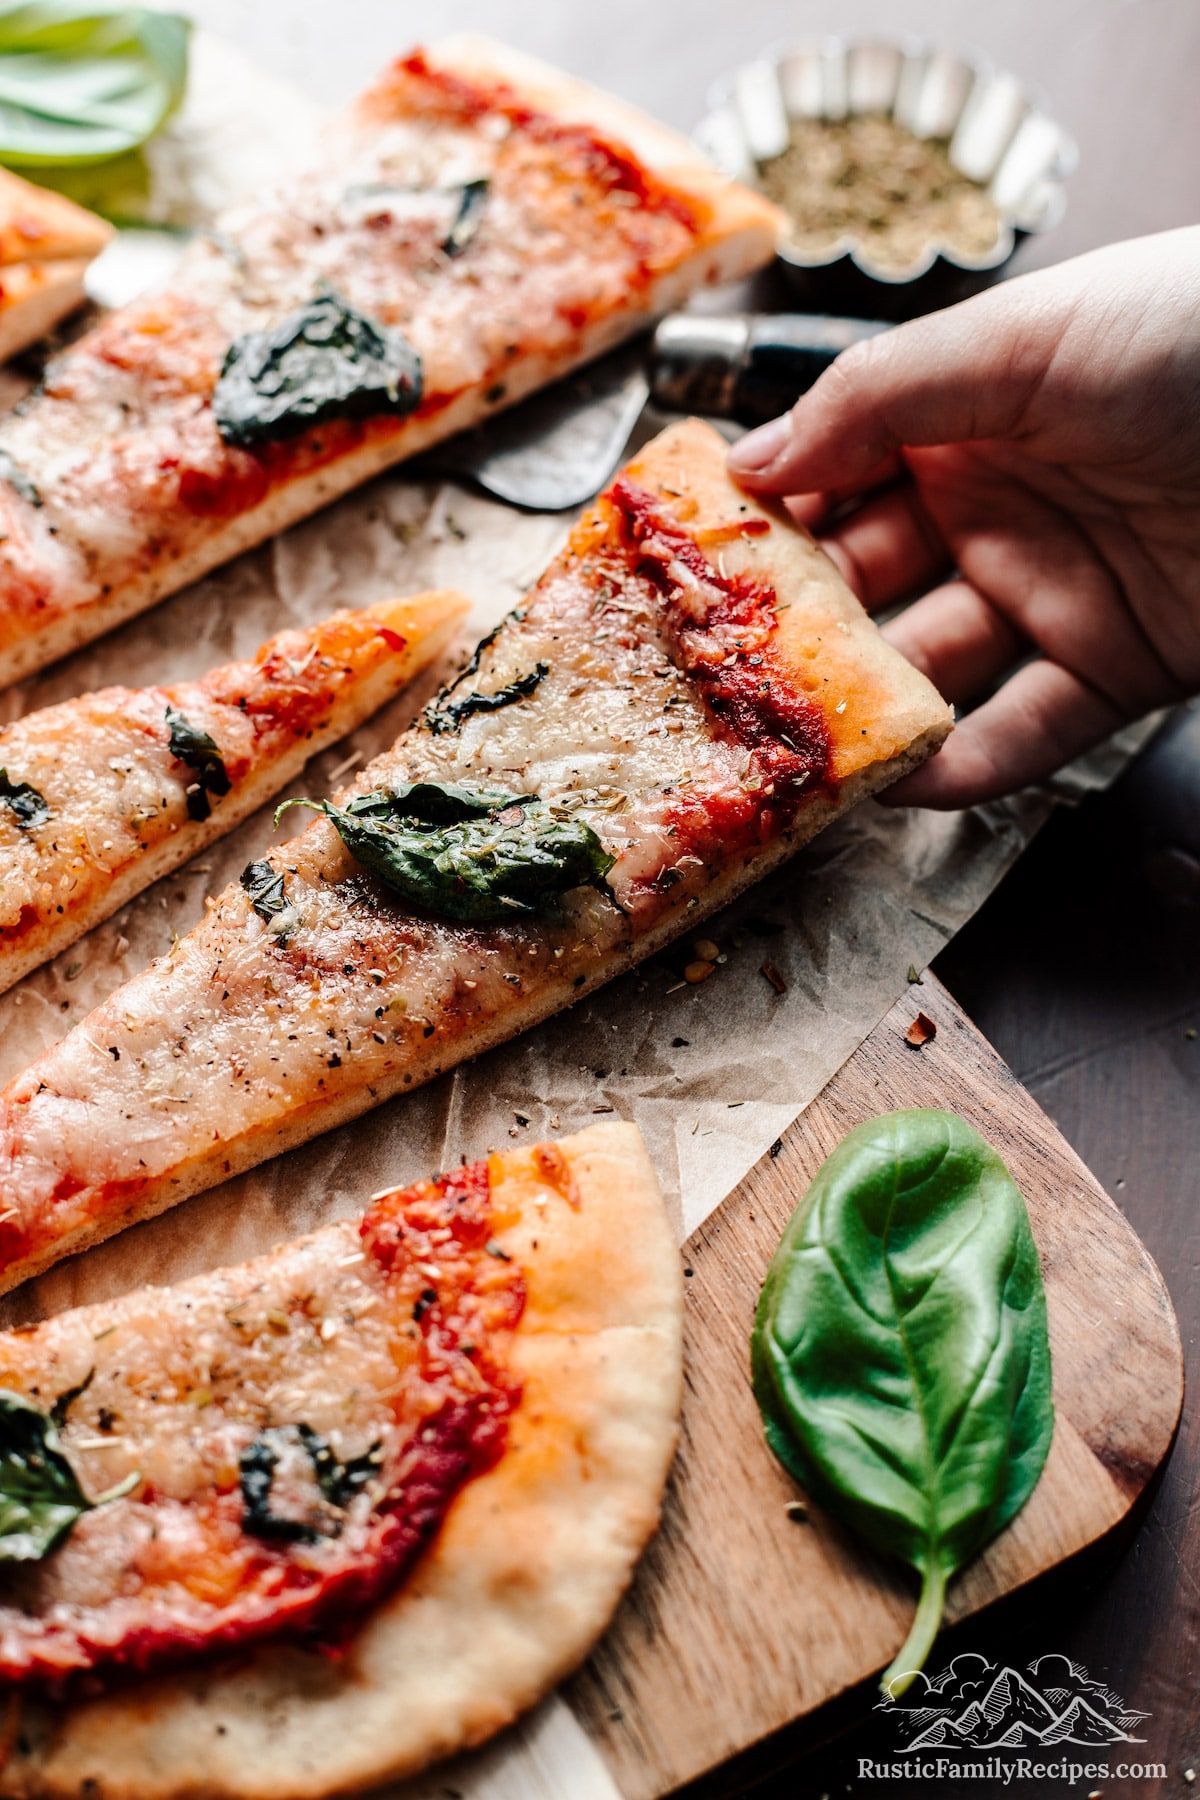 Slices of New York style sourdough pizza, a hand picking up a slice